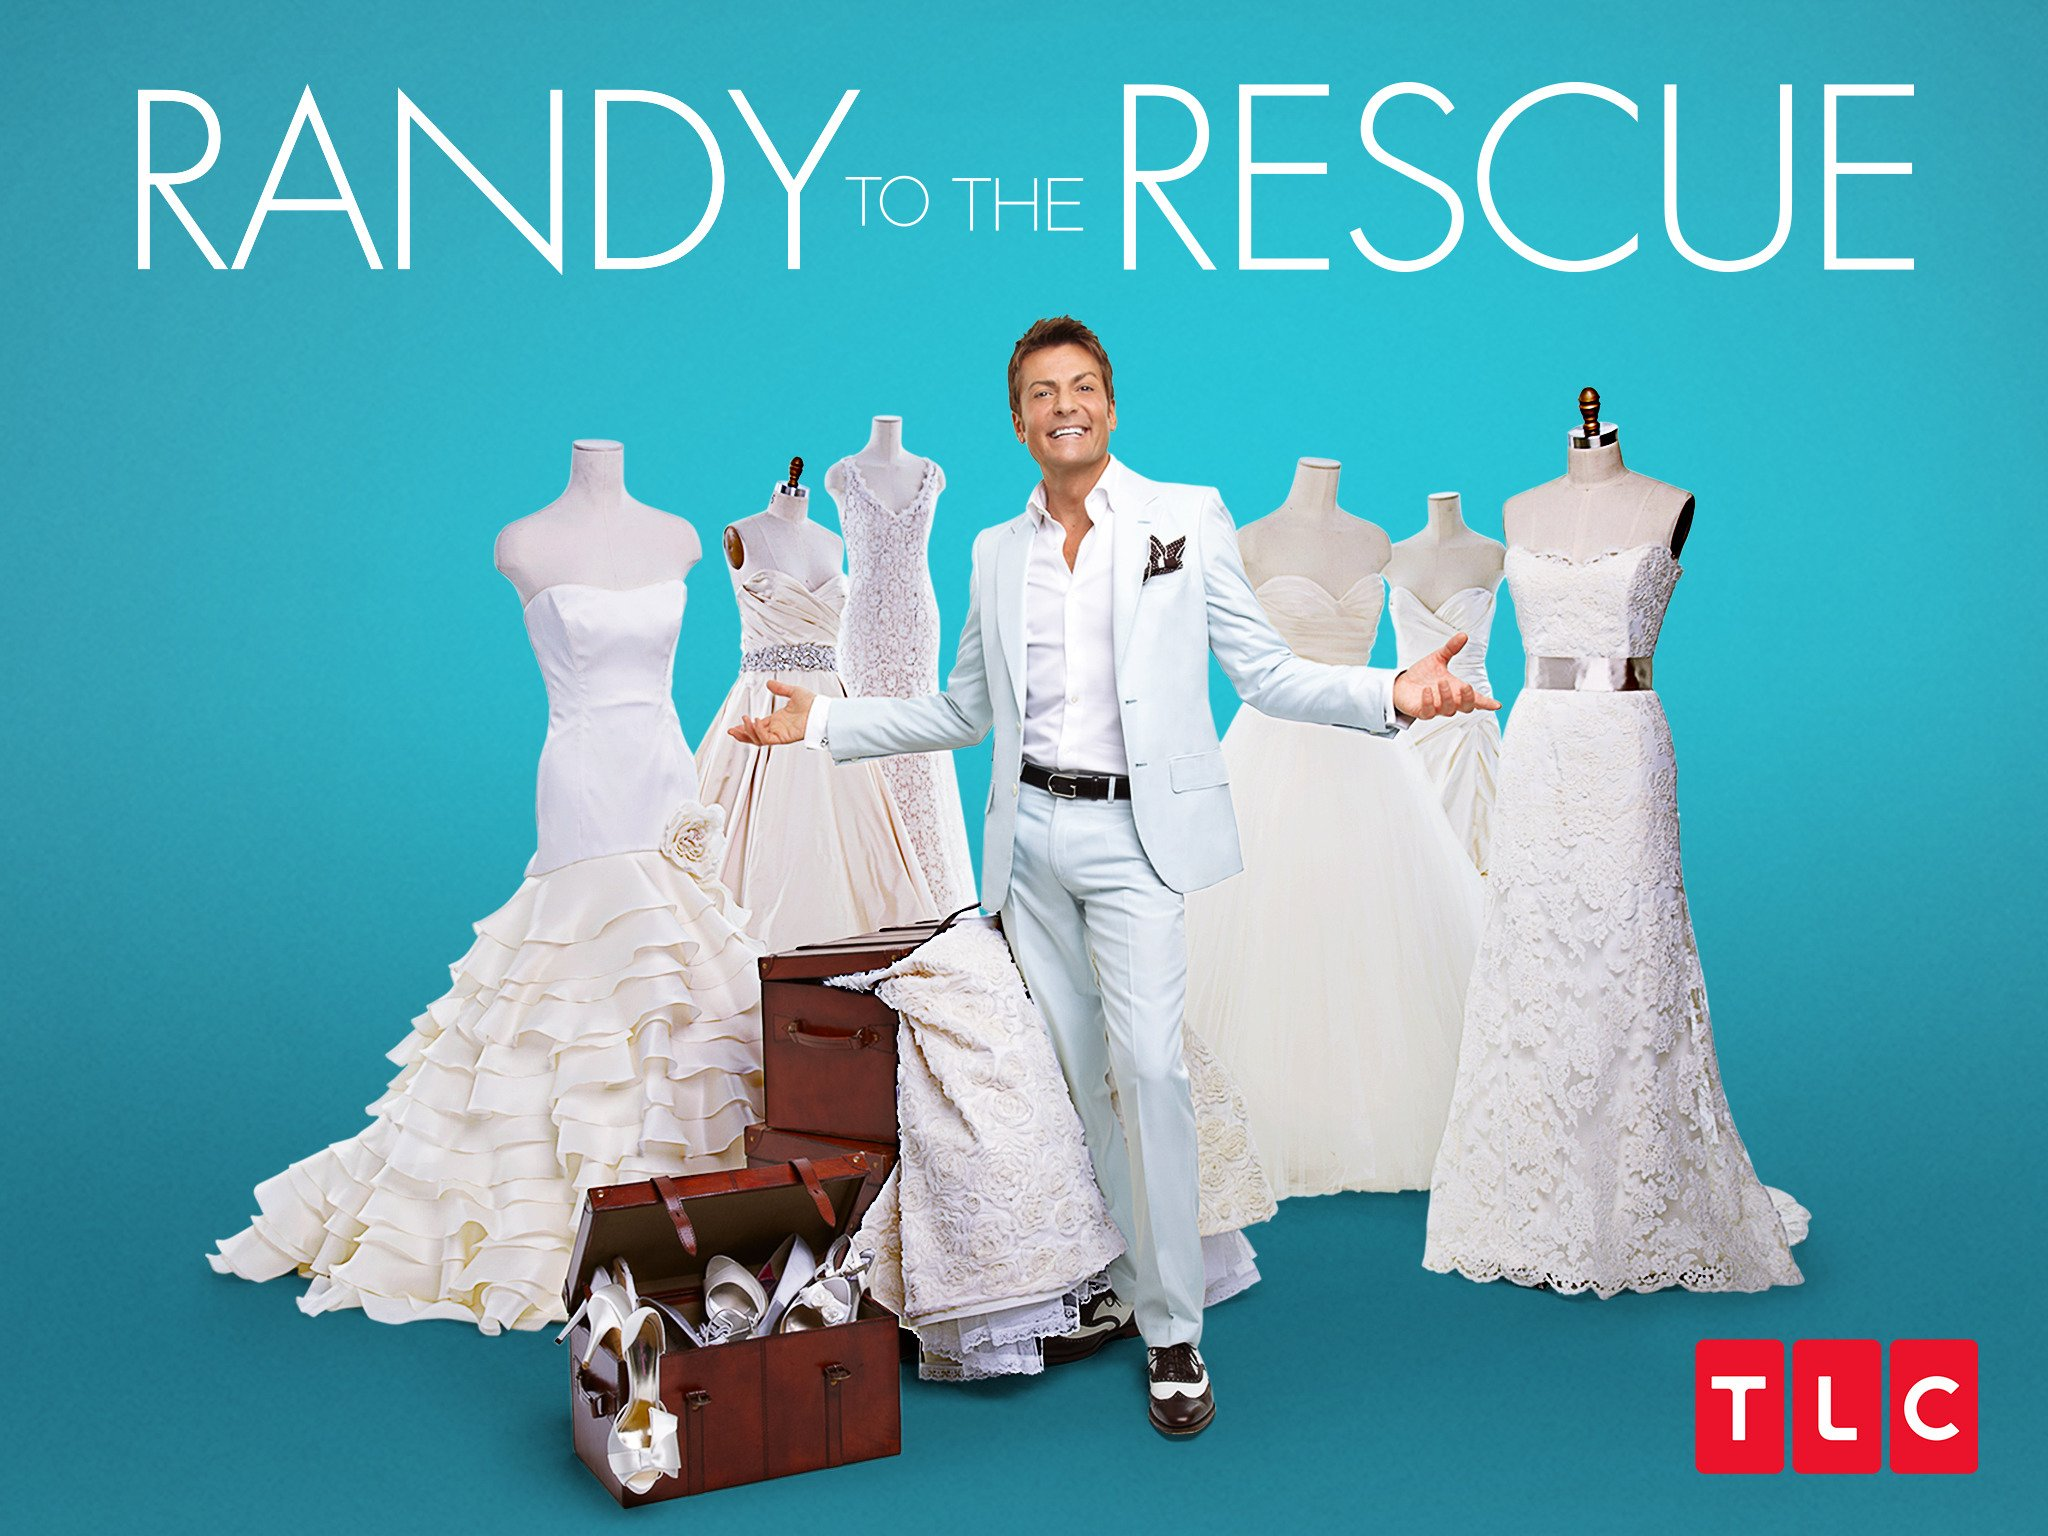 Amazon.com: Randy to the Rescue Season 1: Amazon Digital Services LLC